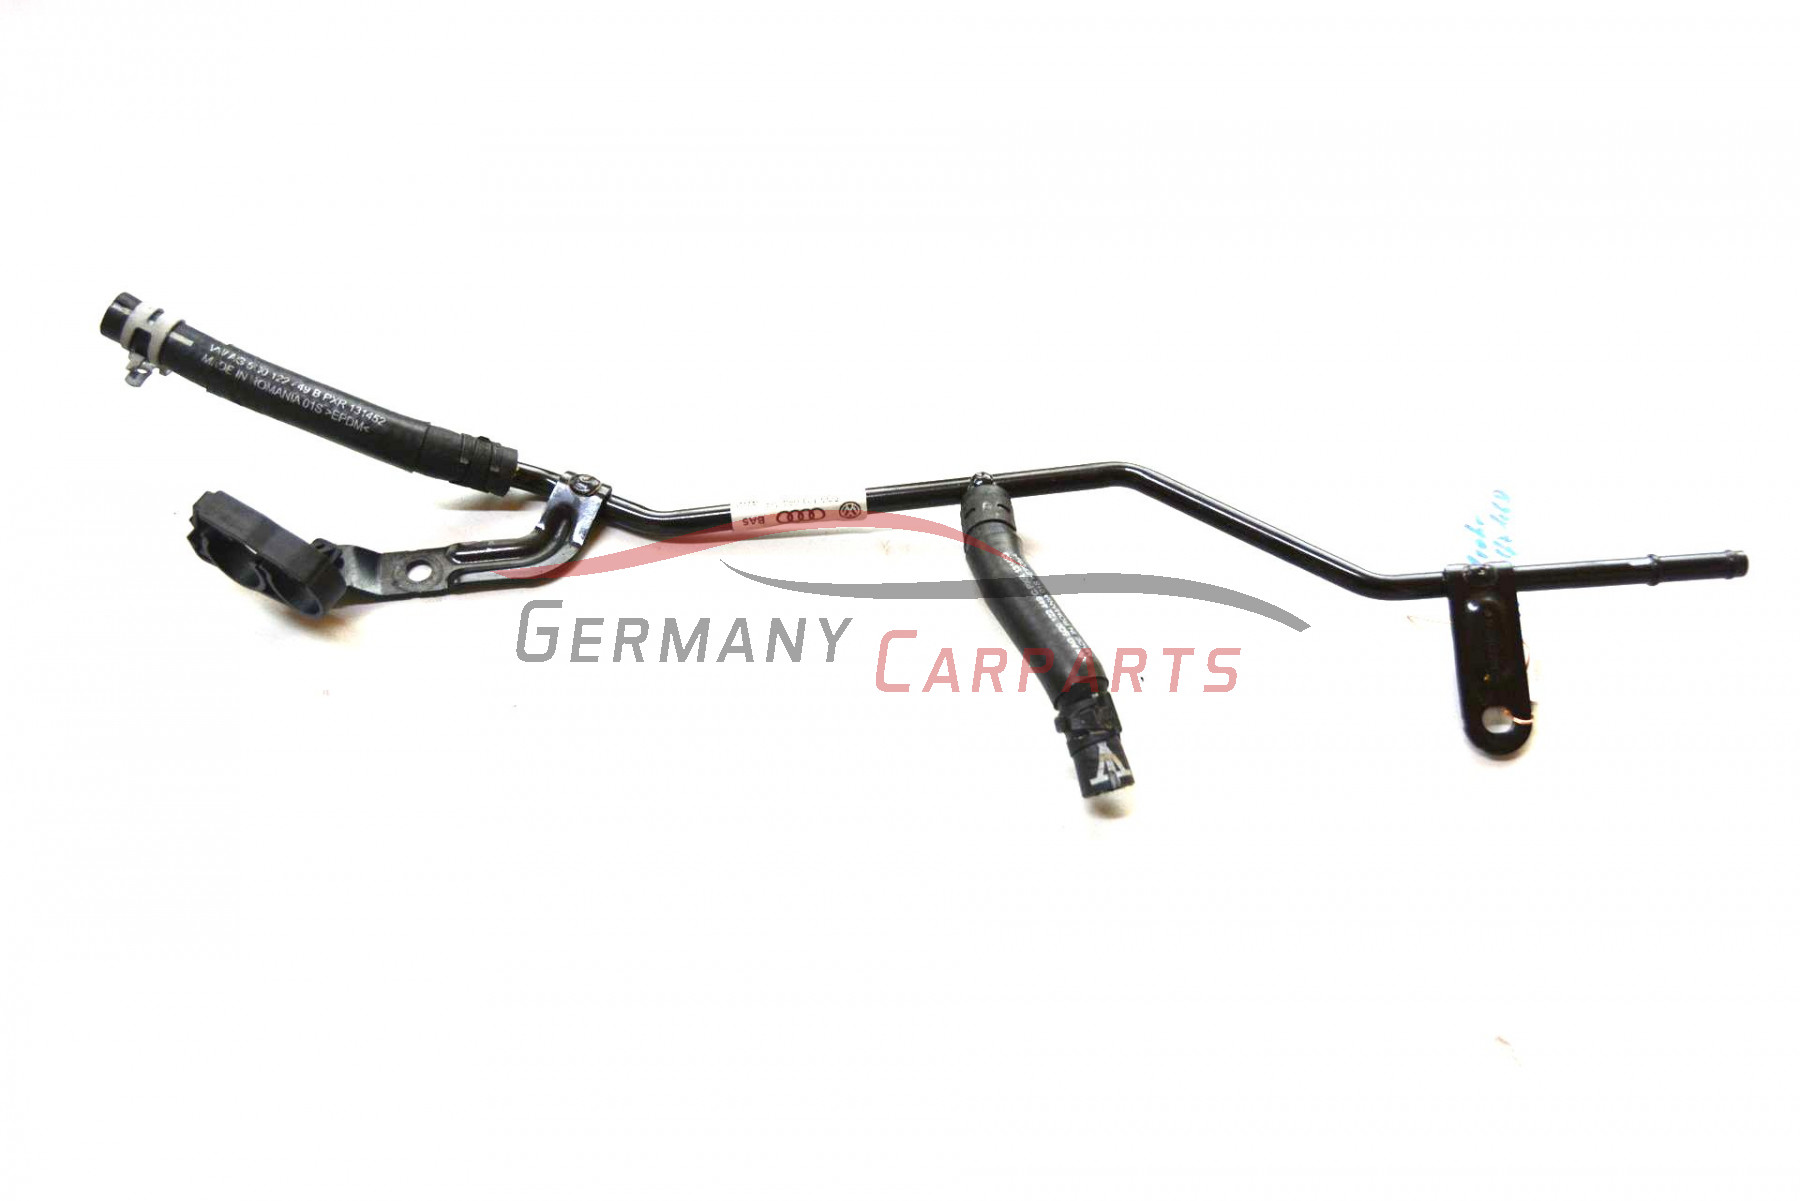 Lexus Rx330 Fuse Box Diagram Wiring Source 2014 Ford Mustang Ds0t 17828 Likewise 2007 Ls 460 Location Further 2001 Is300 Parts